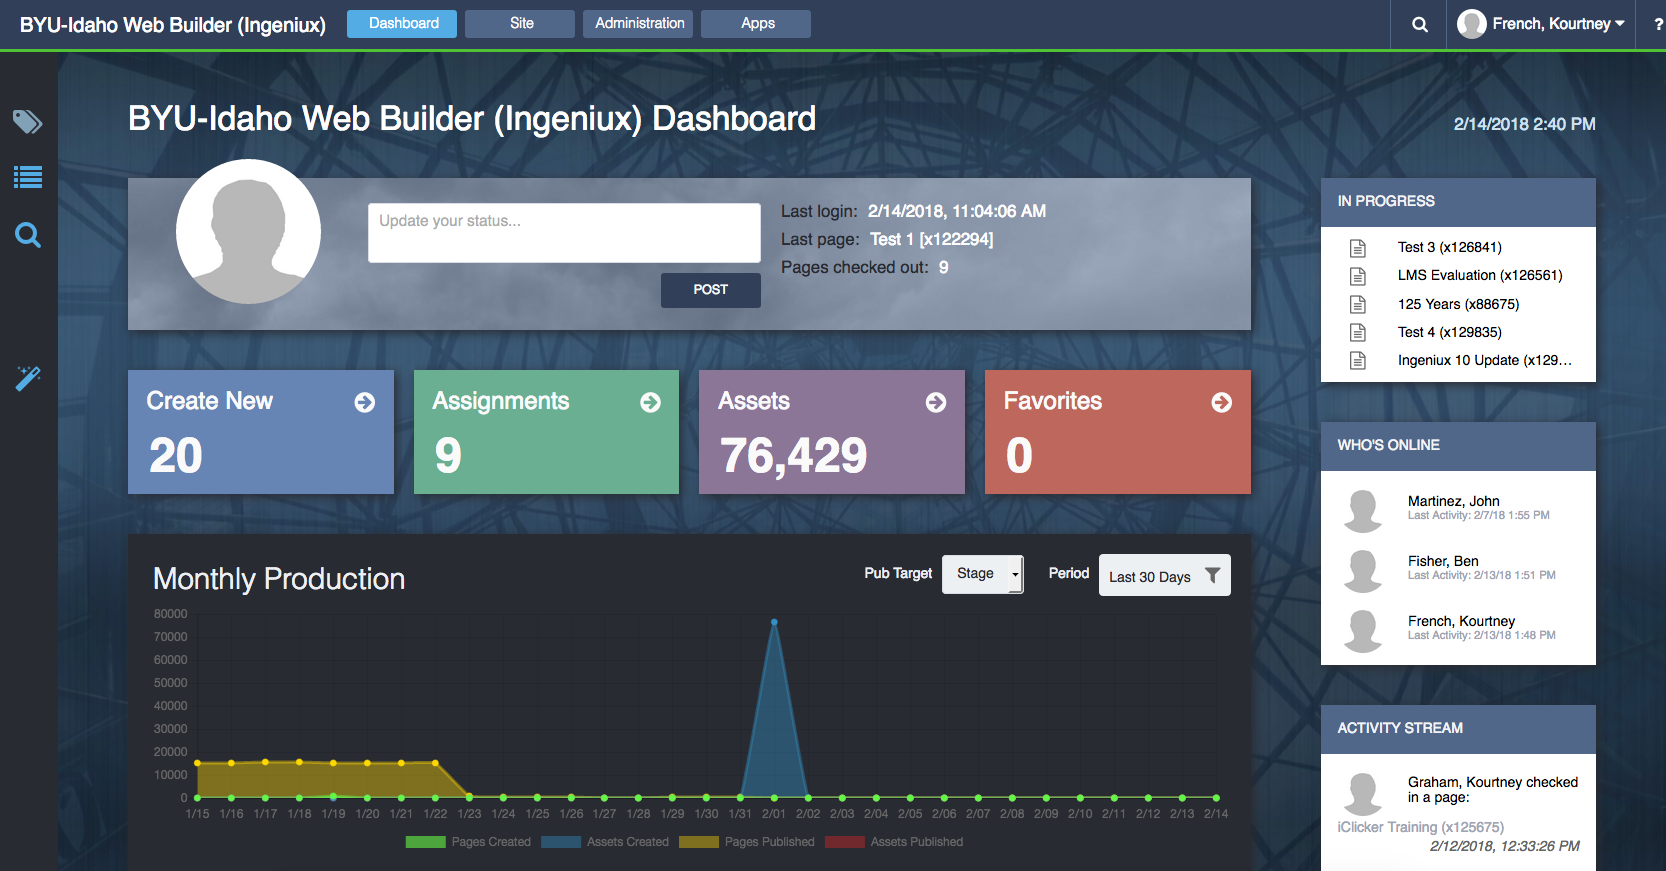 Image of the Ingeniux dashboard screen for the BYU-Idaho website.